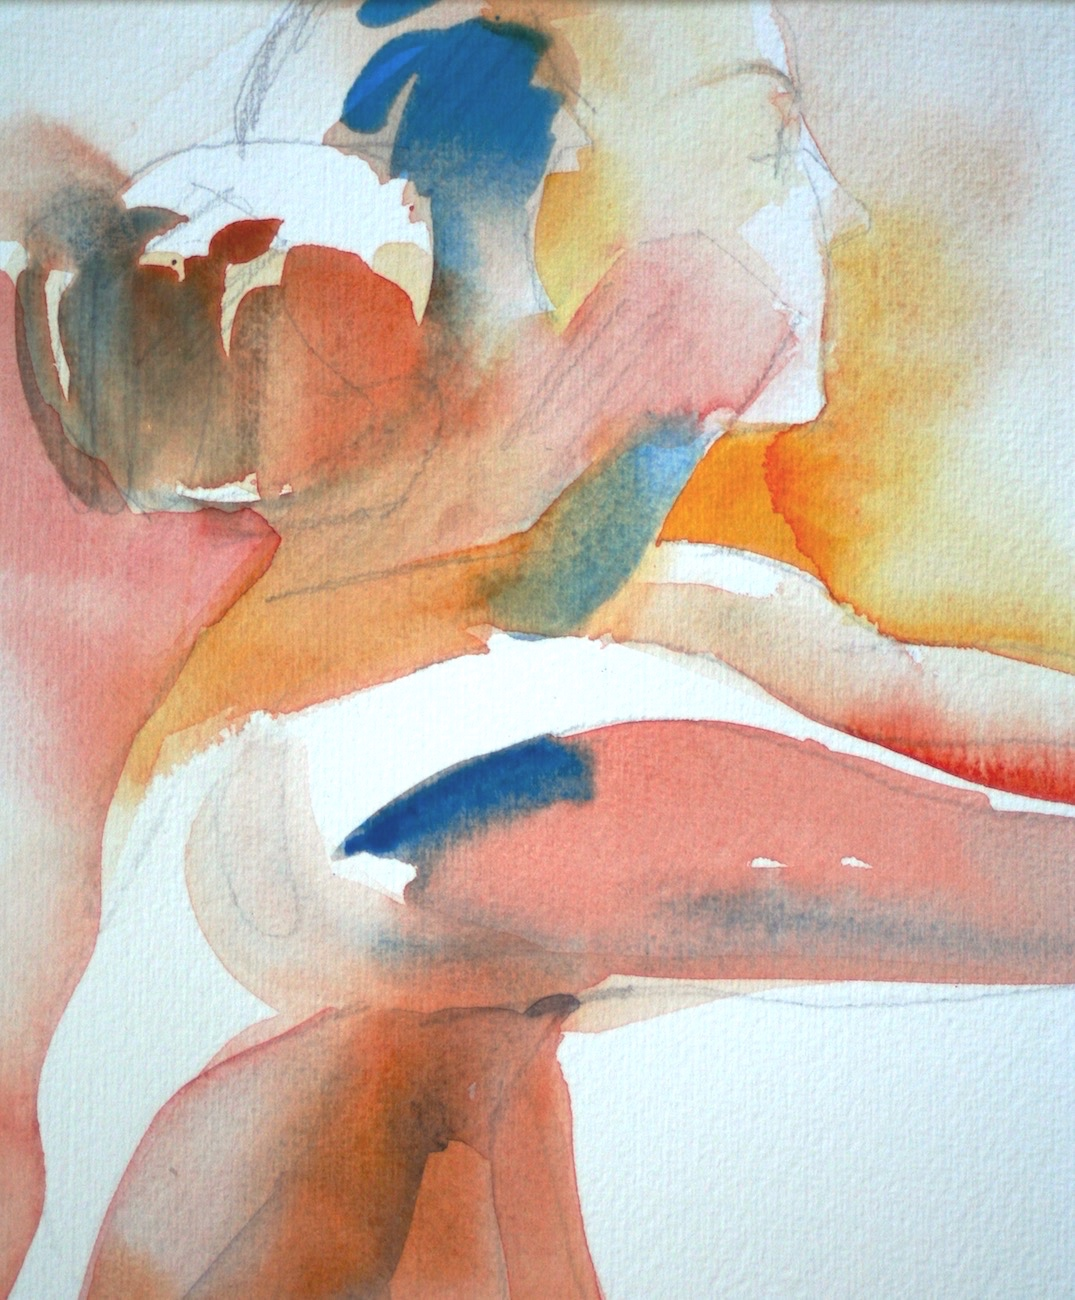 The figure in watercolor - Celebrating the human form with expressive brushstrokes and transparent washes of saturated color ….